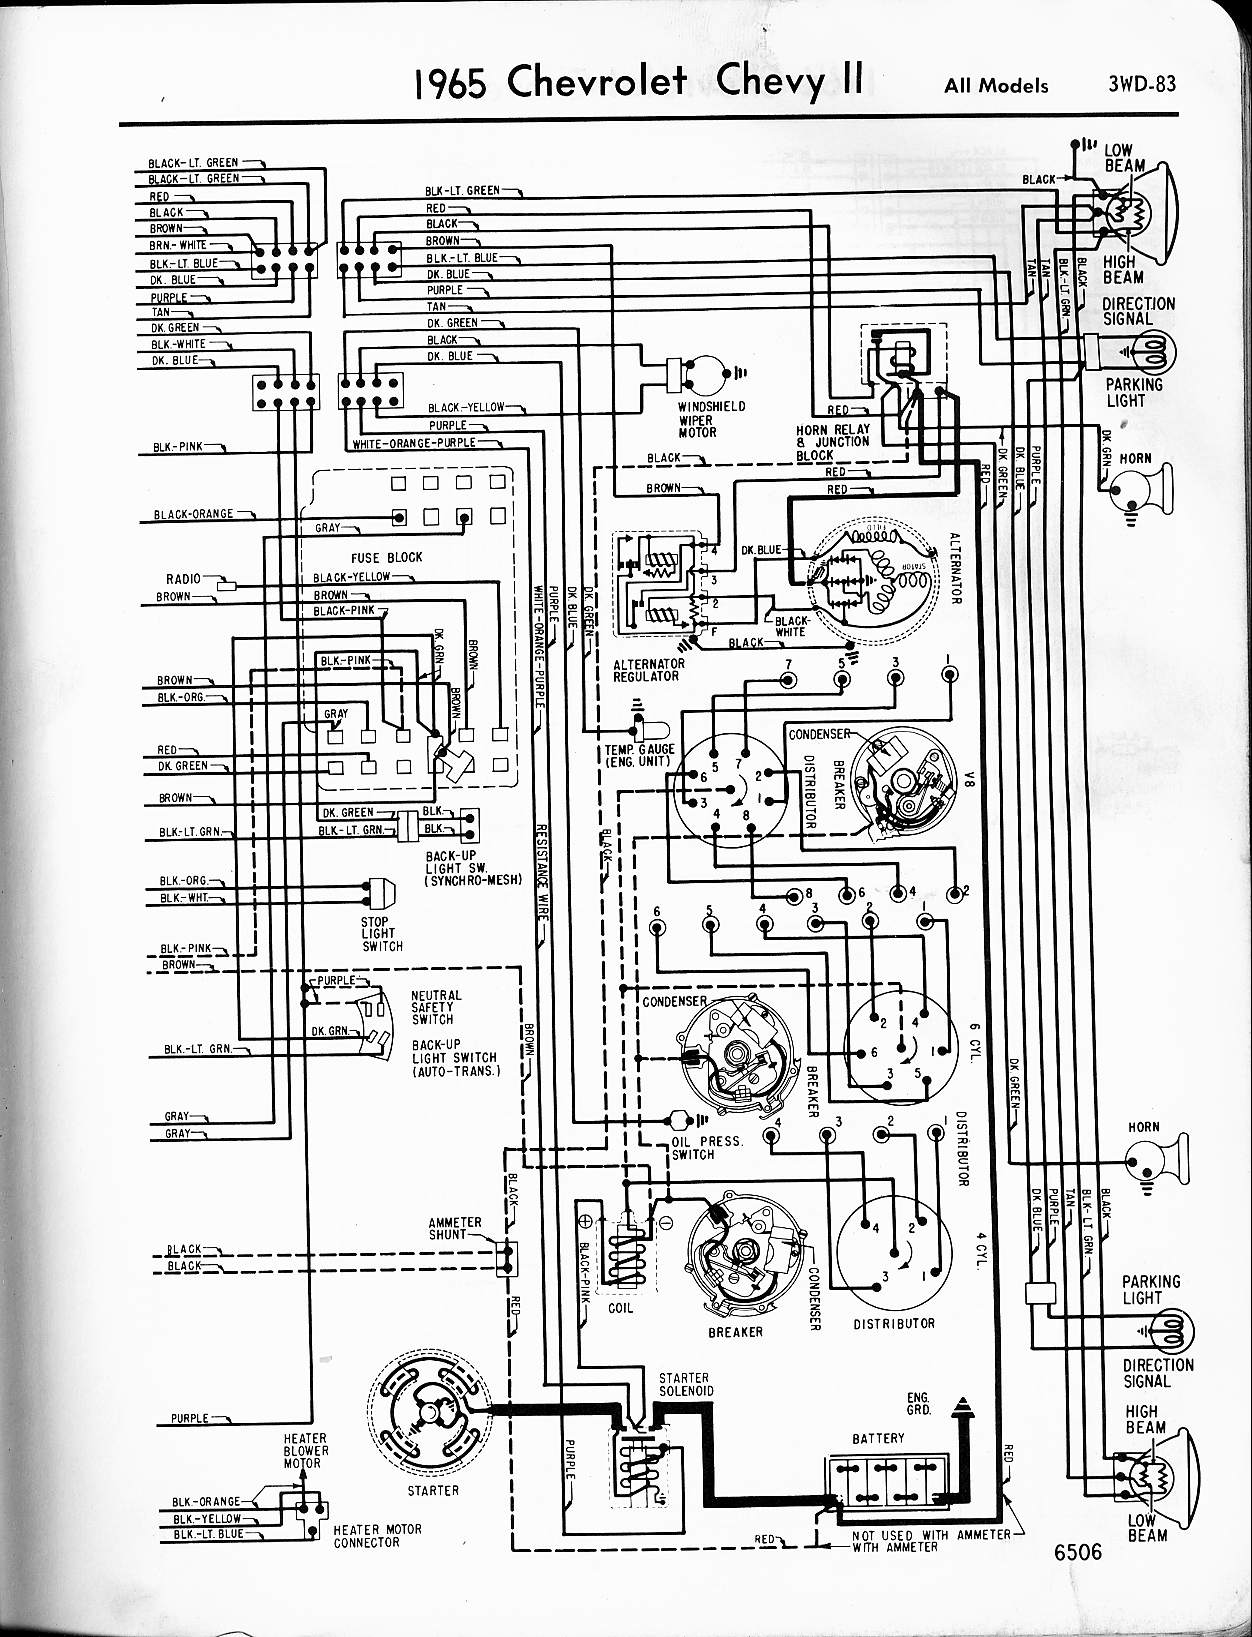 MWireChev65_3WD 083 chevy diagrams 1985 Chevy Truck Wiring Harness at webbmarketing.co